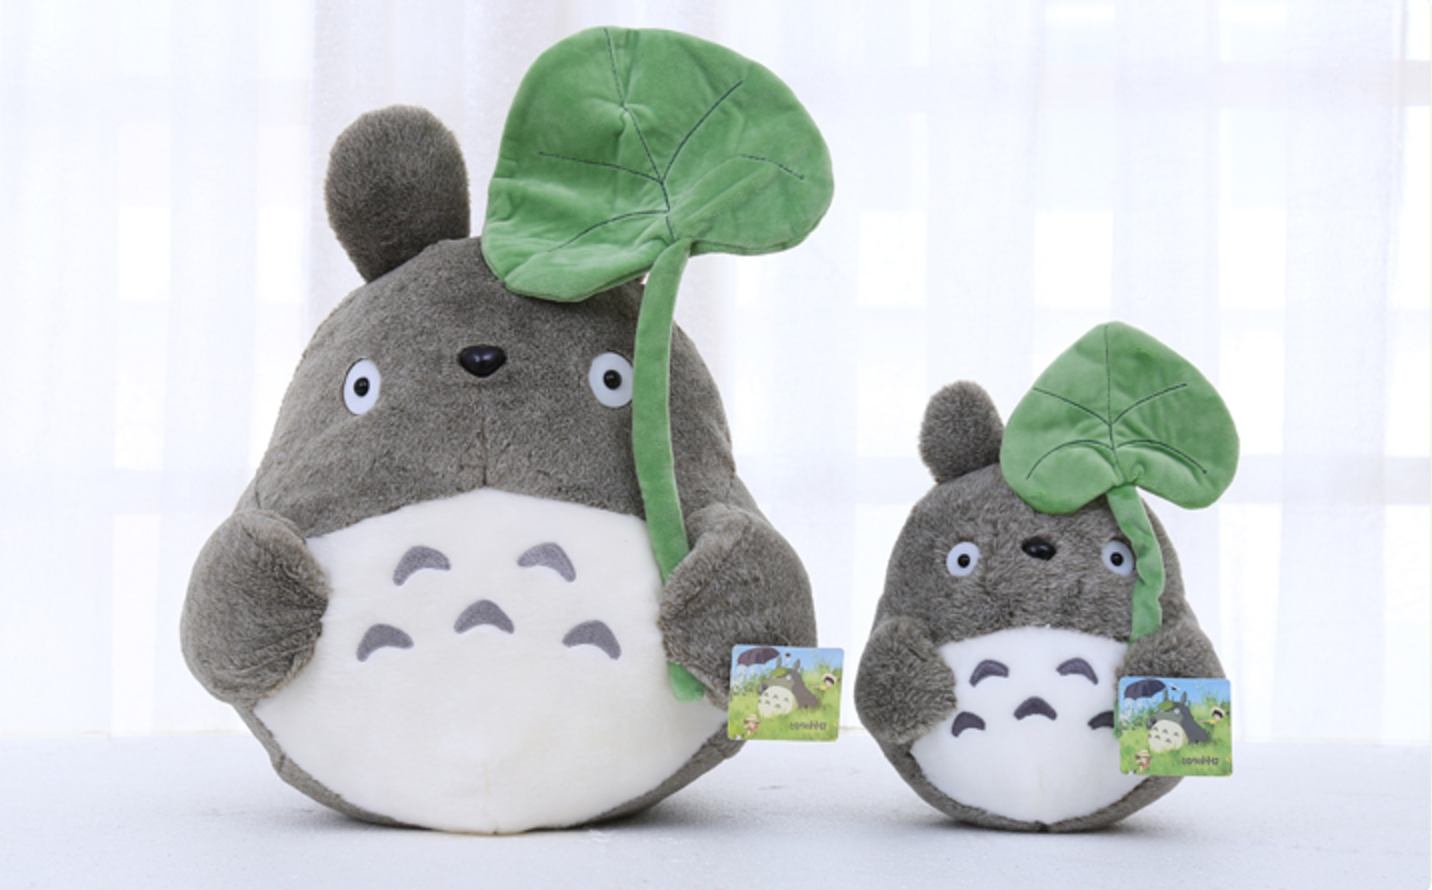 The admiring plush with different printed cartoon images in it